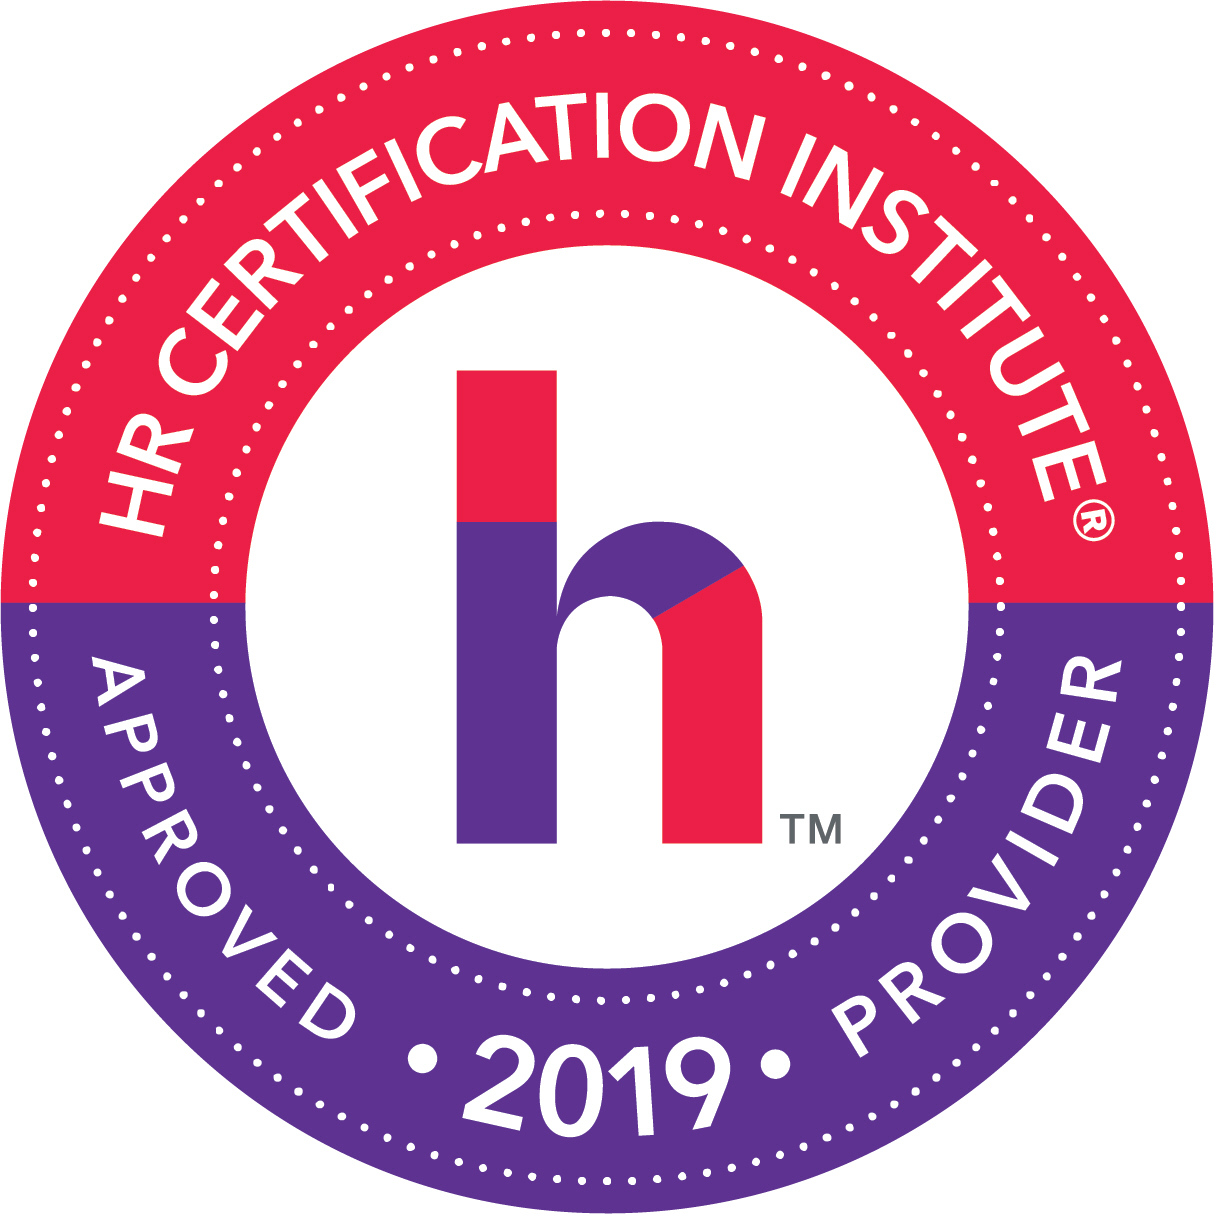 Humanist Learning Systems is an HRCI approved provider